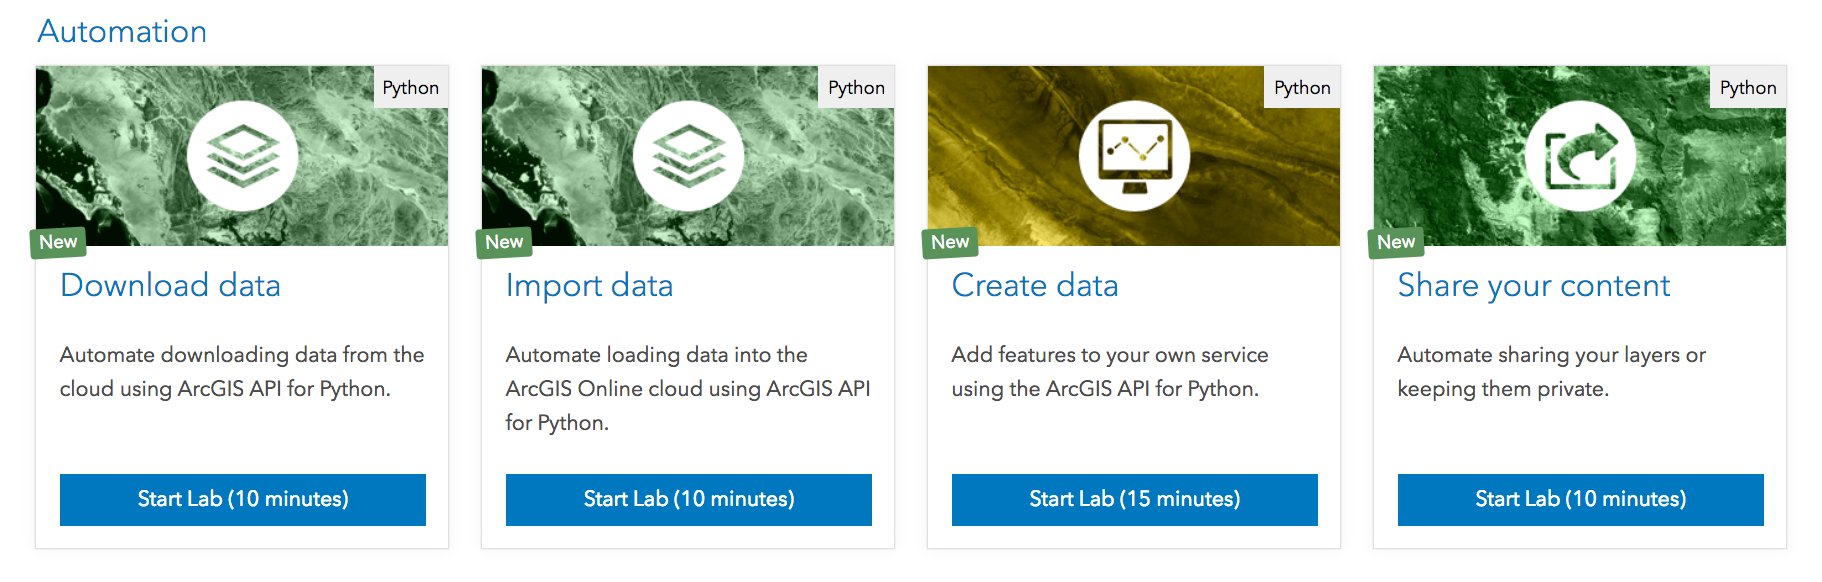 ArcGIS for Developers: Build apps with over 30 new DevLabs!